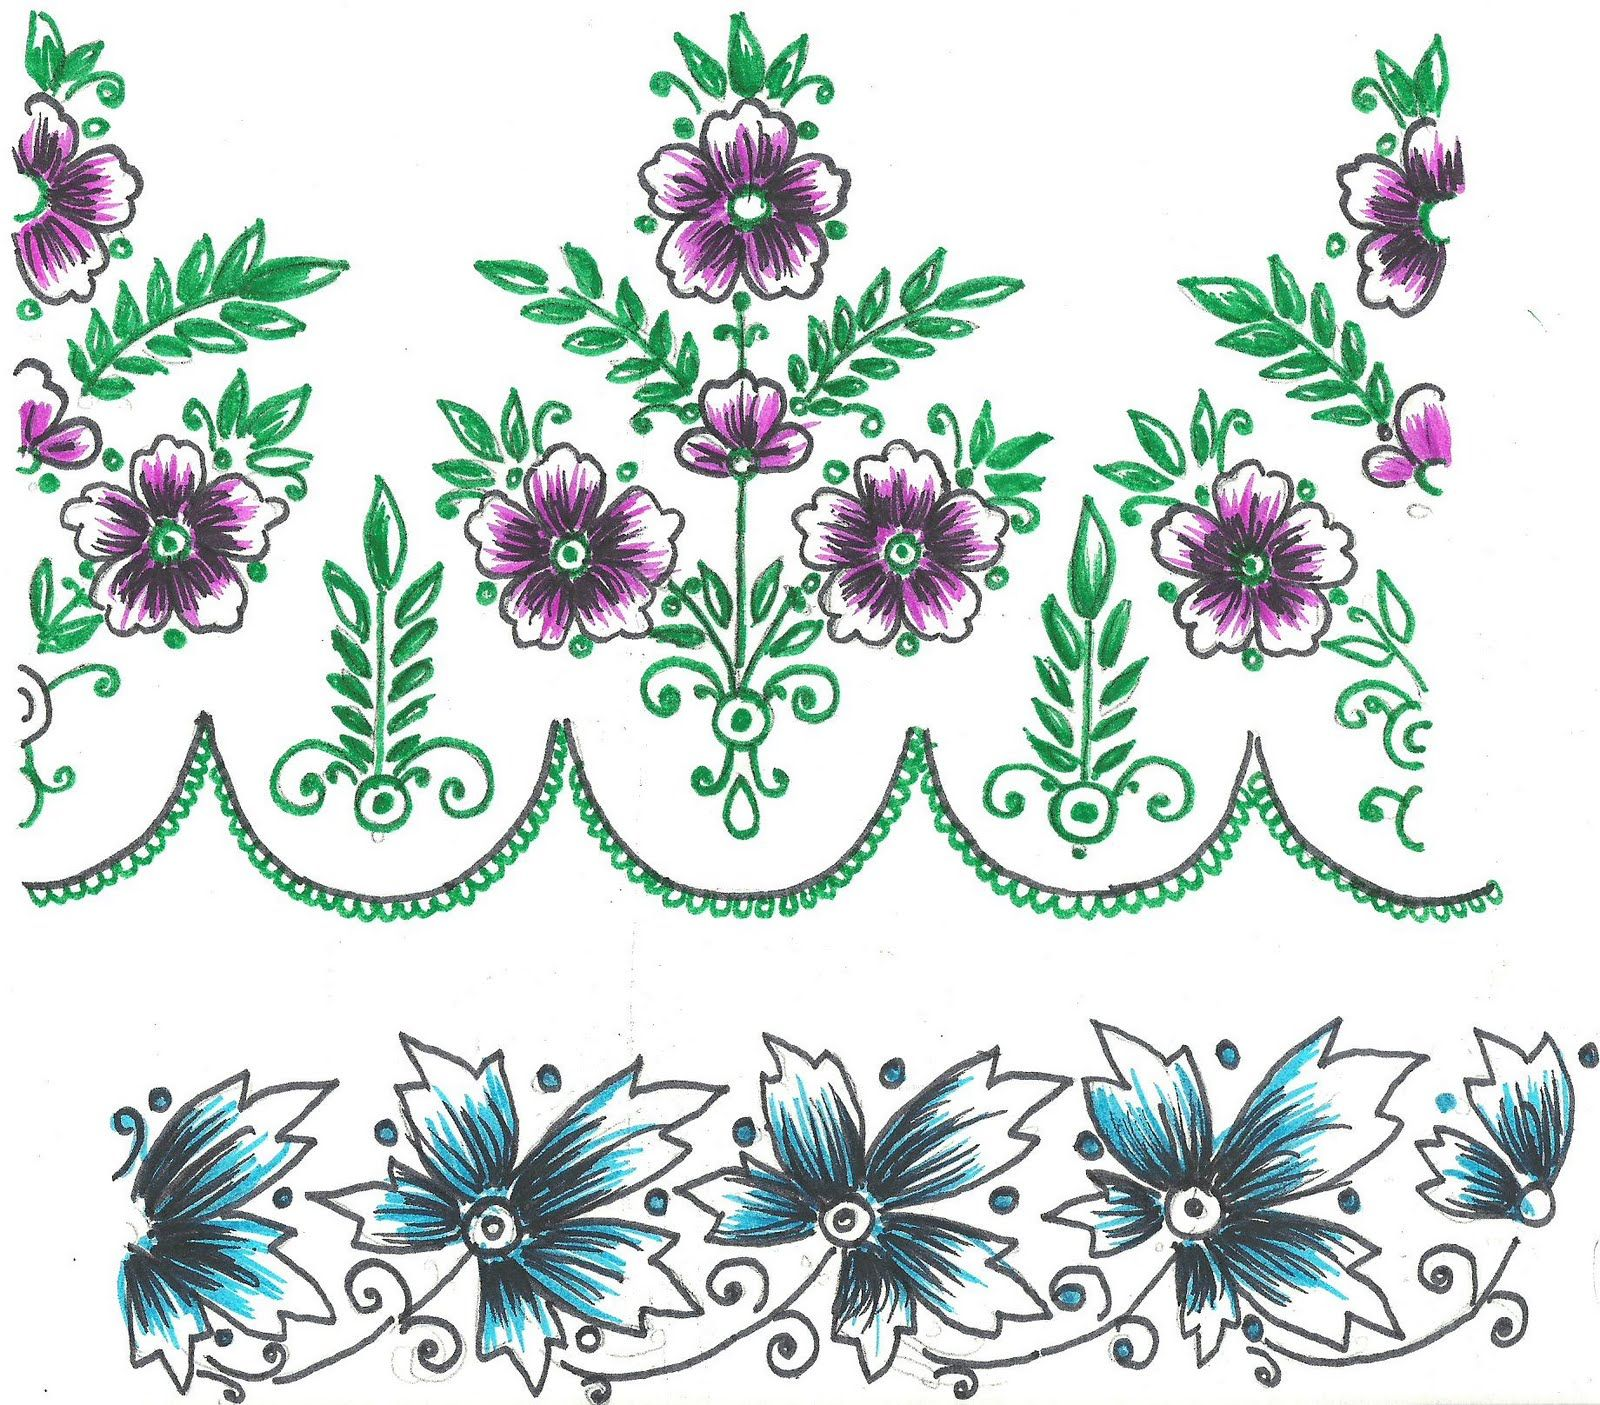 Free hand embroidery flowers patterns saree and table cloth free hand embroidery flowers patterns saree and table cloth border design jeuxipadfo Choice Image